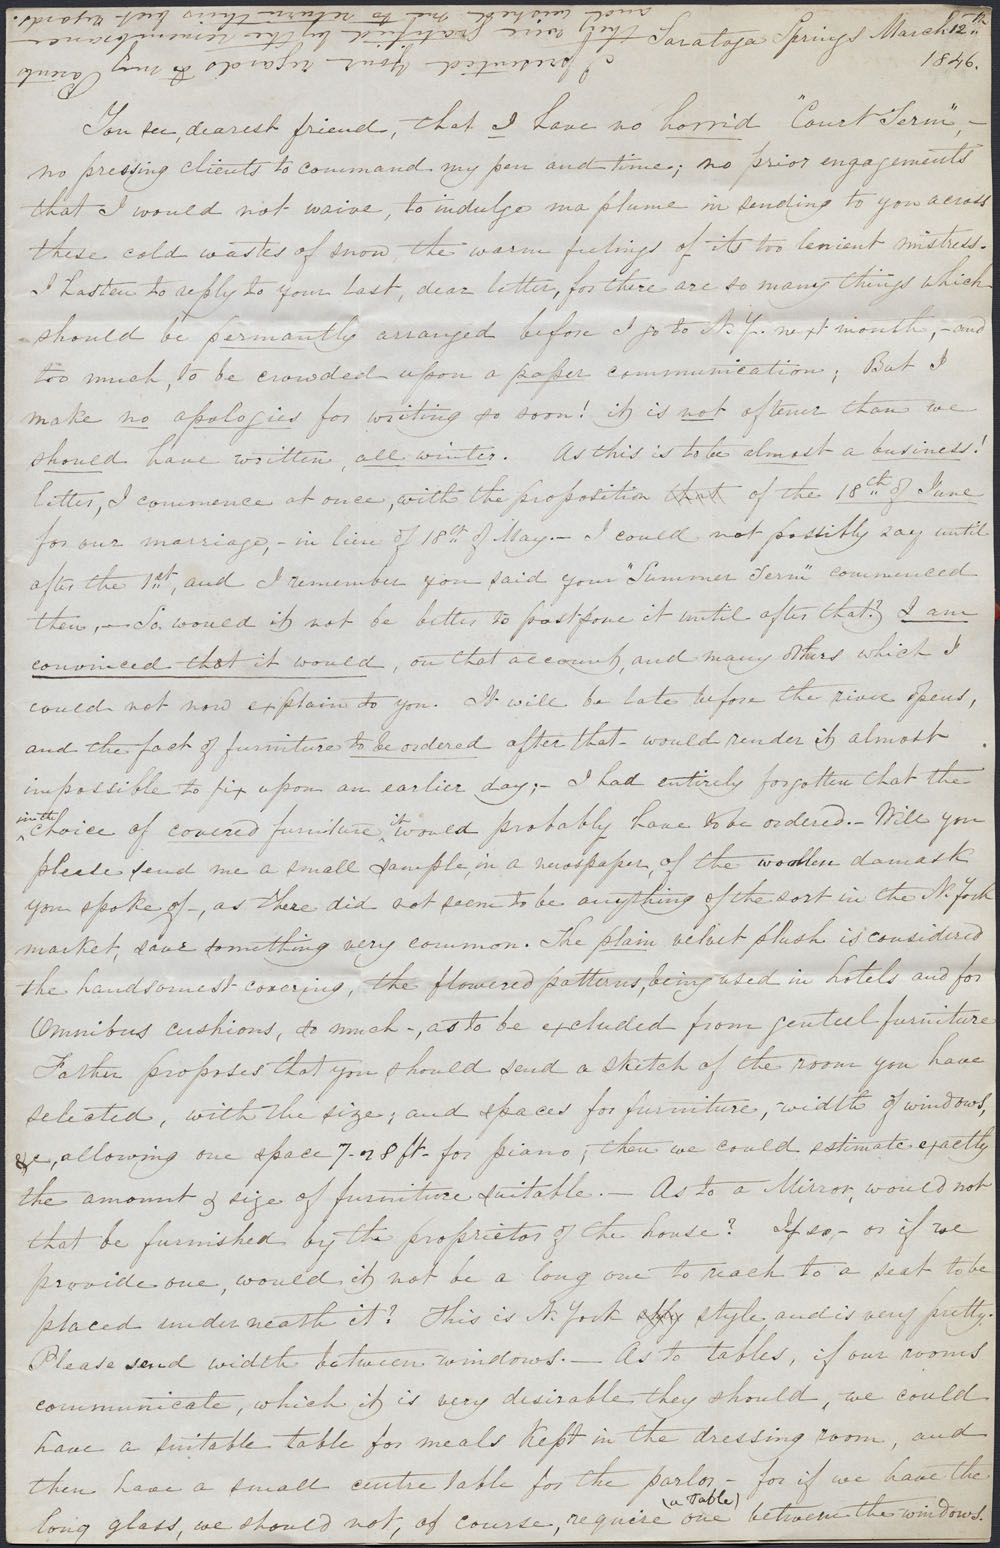 [Correspondence of Mary Westcott] 1846. (item 5)